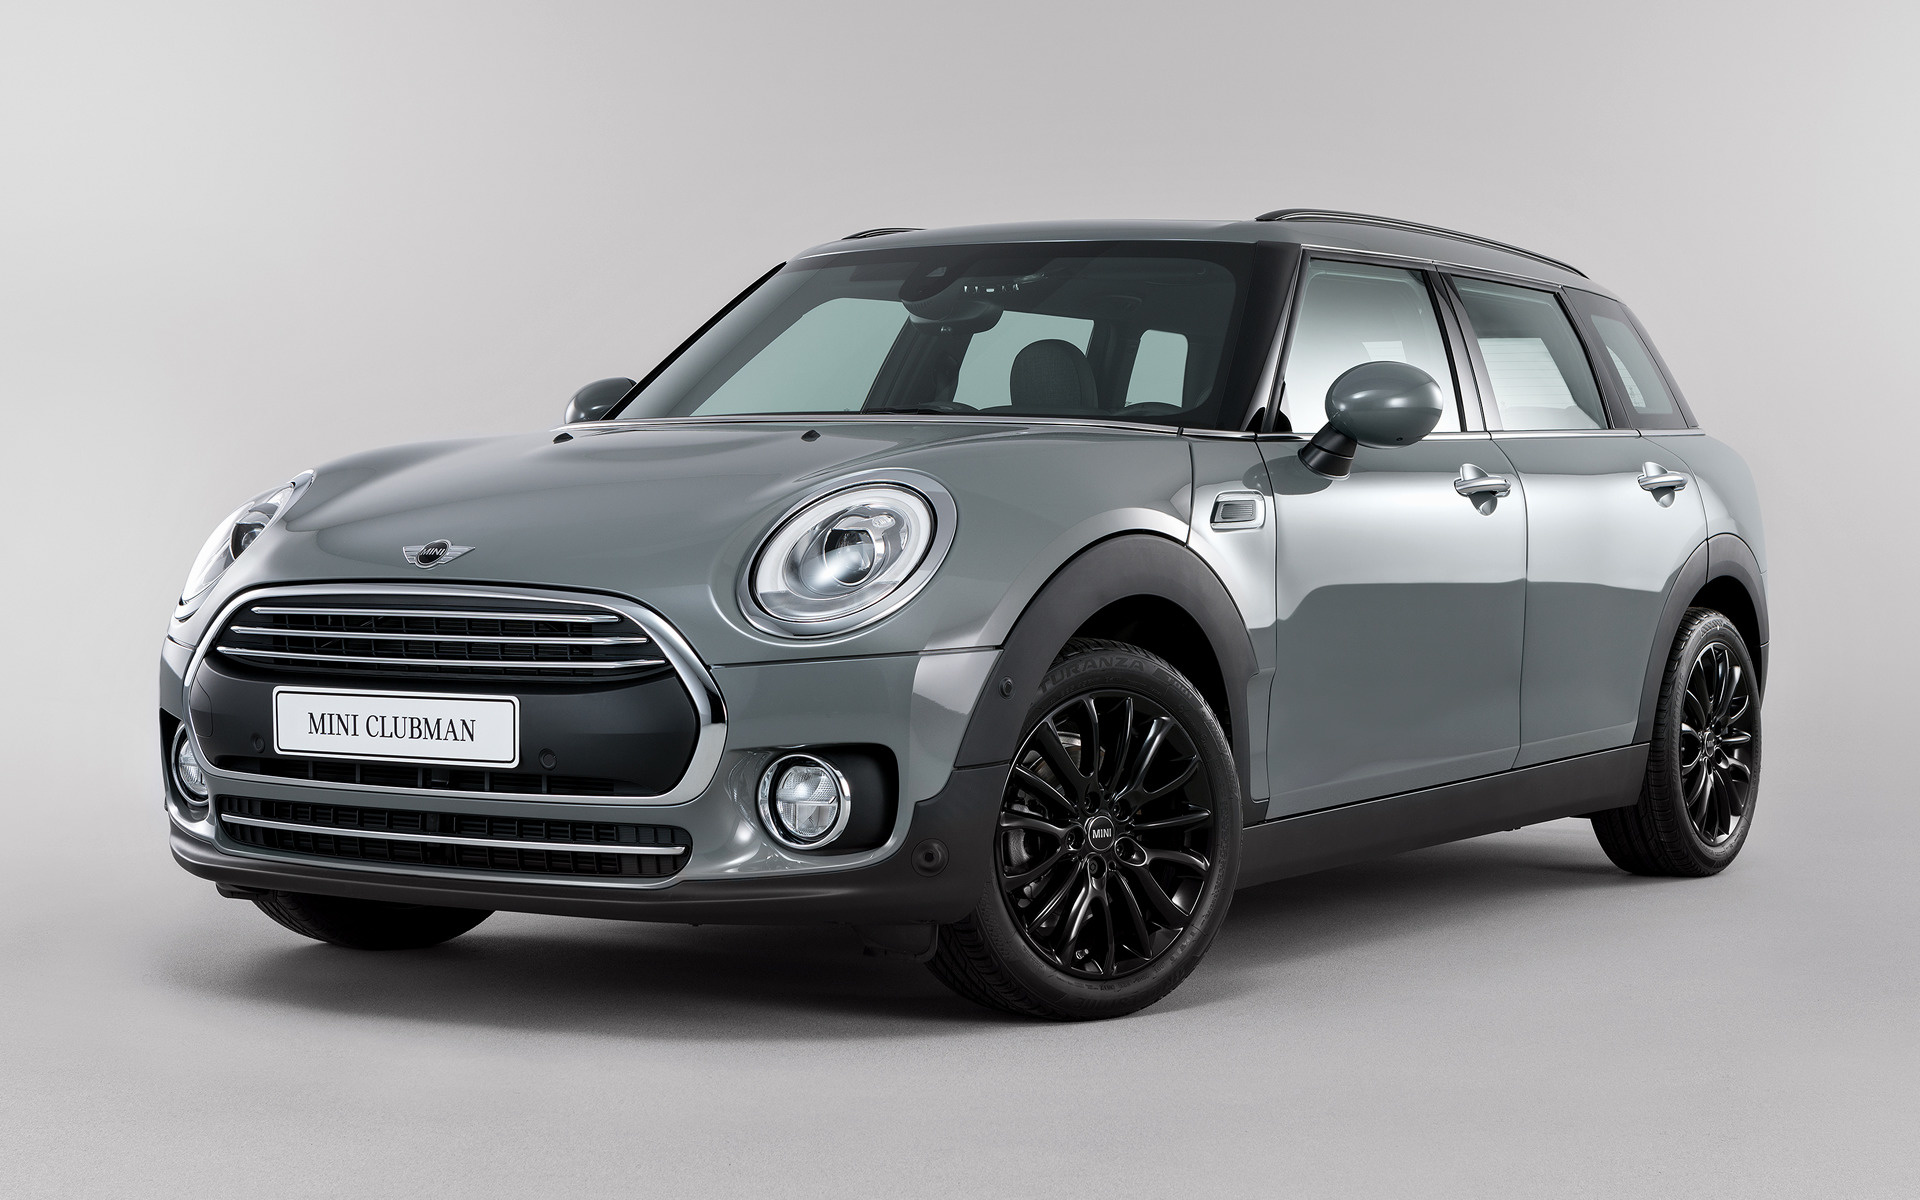 2018 Mini Cooper Clubman Business Edition обои и картинки на